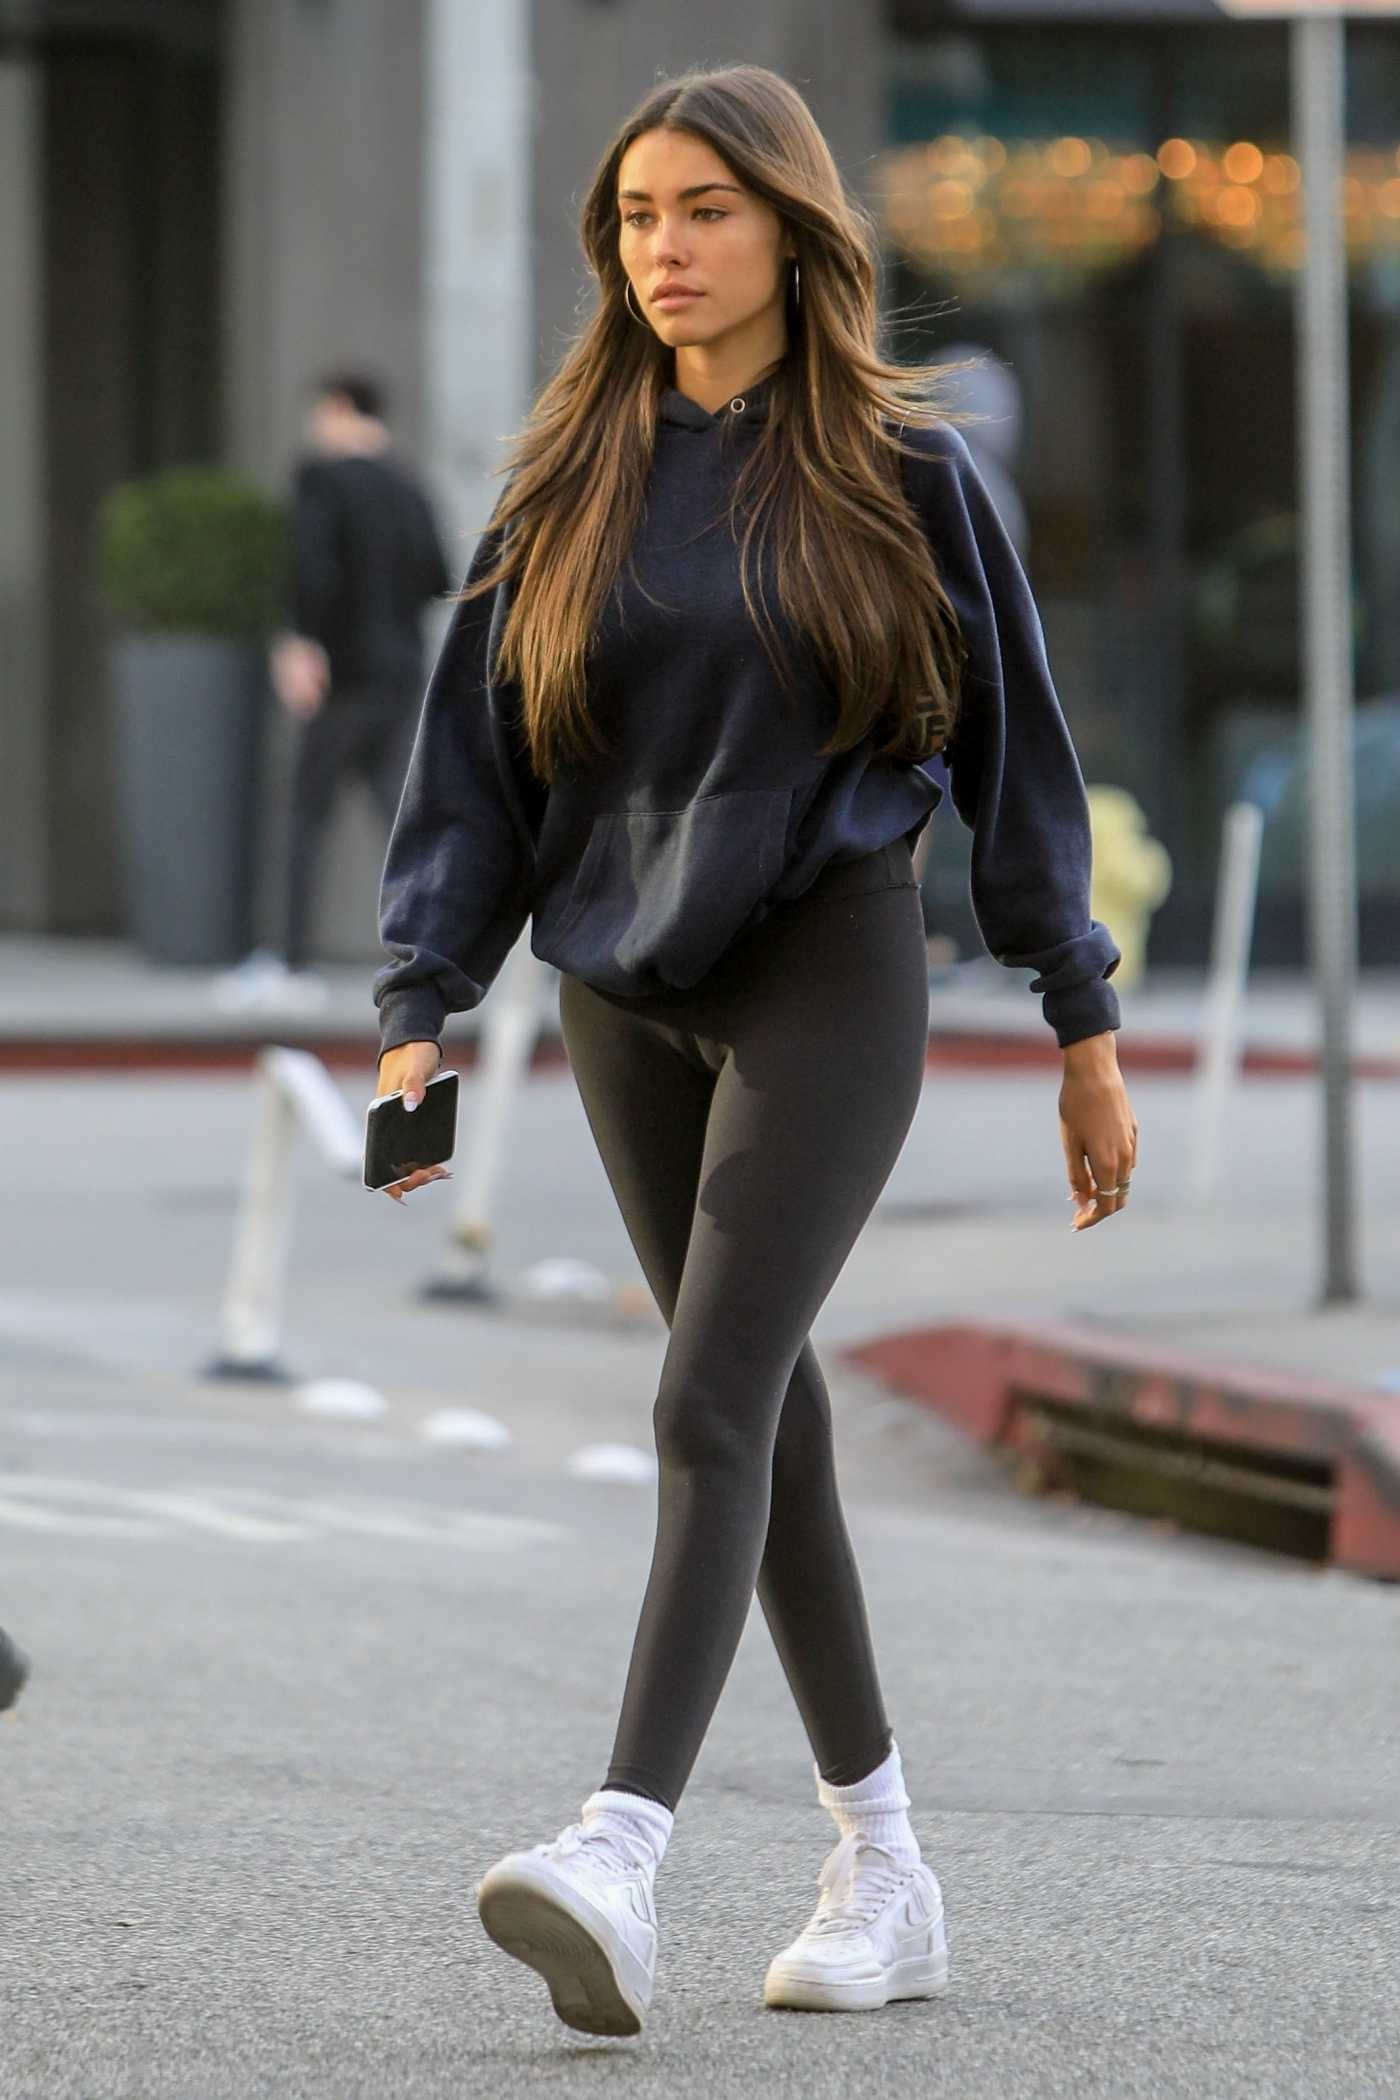 Madison Beer in a Black Leggings Was Seen Out in West Hollywood 01/01/2020